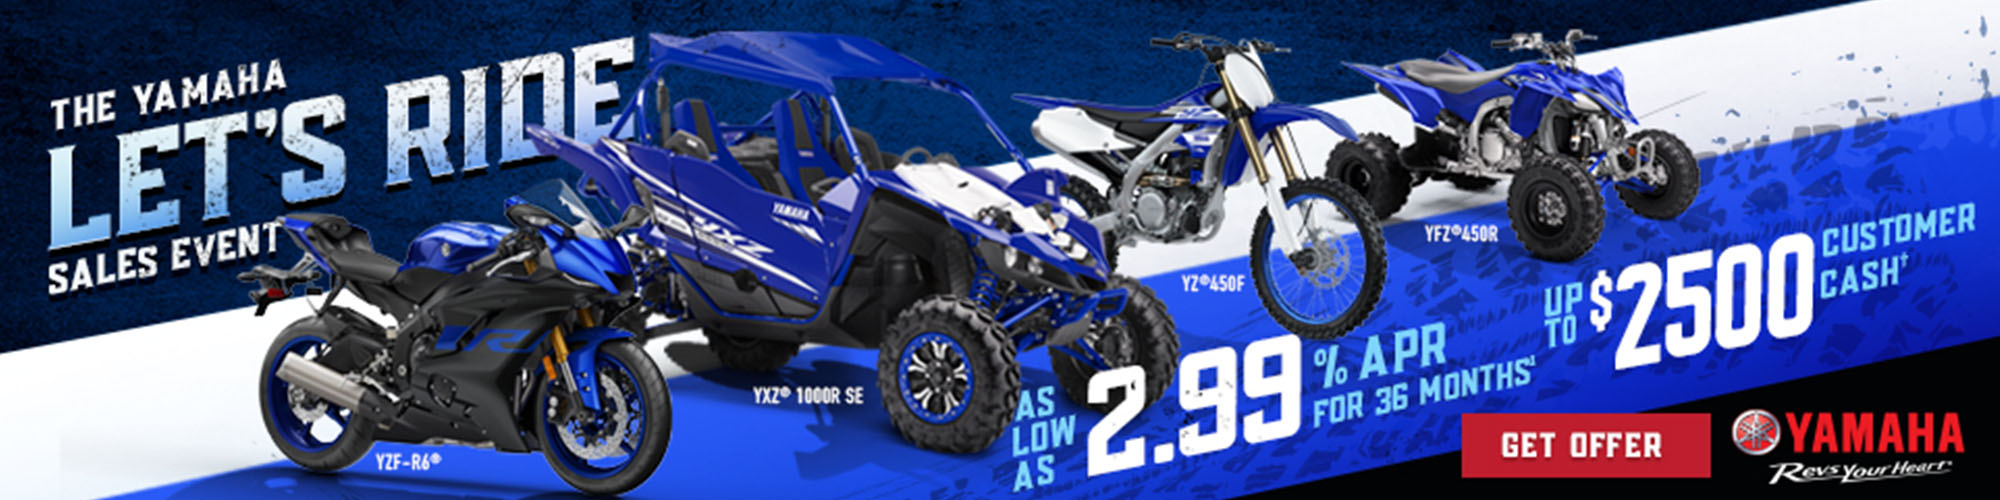 Yamaha Let's Ride Sales Event at Ride Center USA